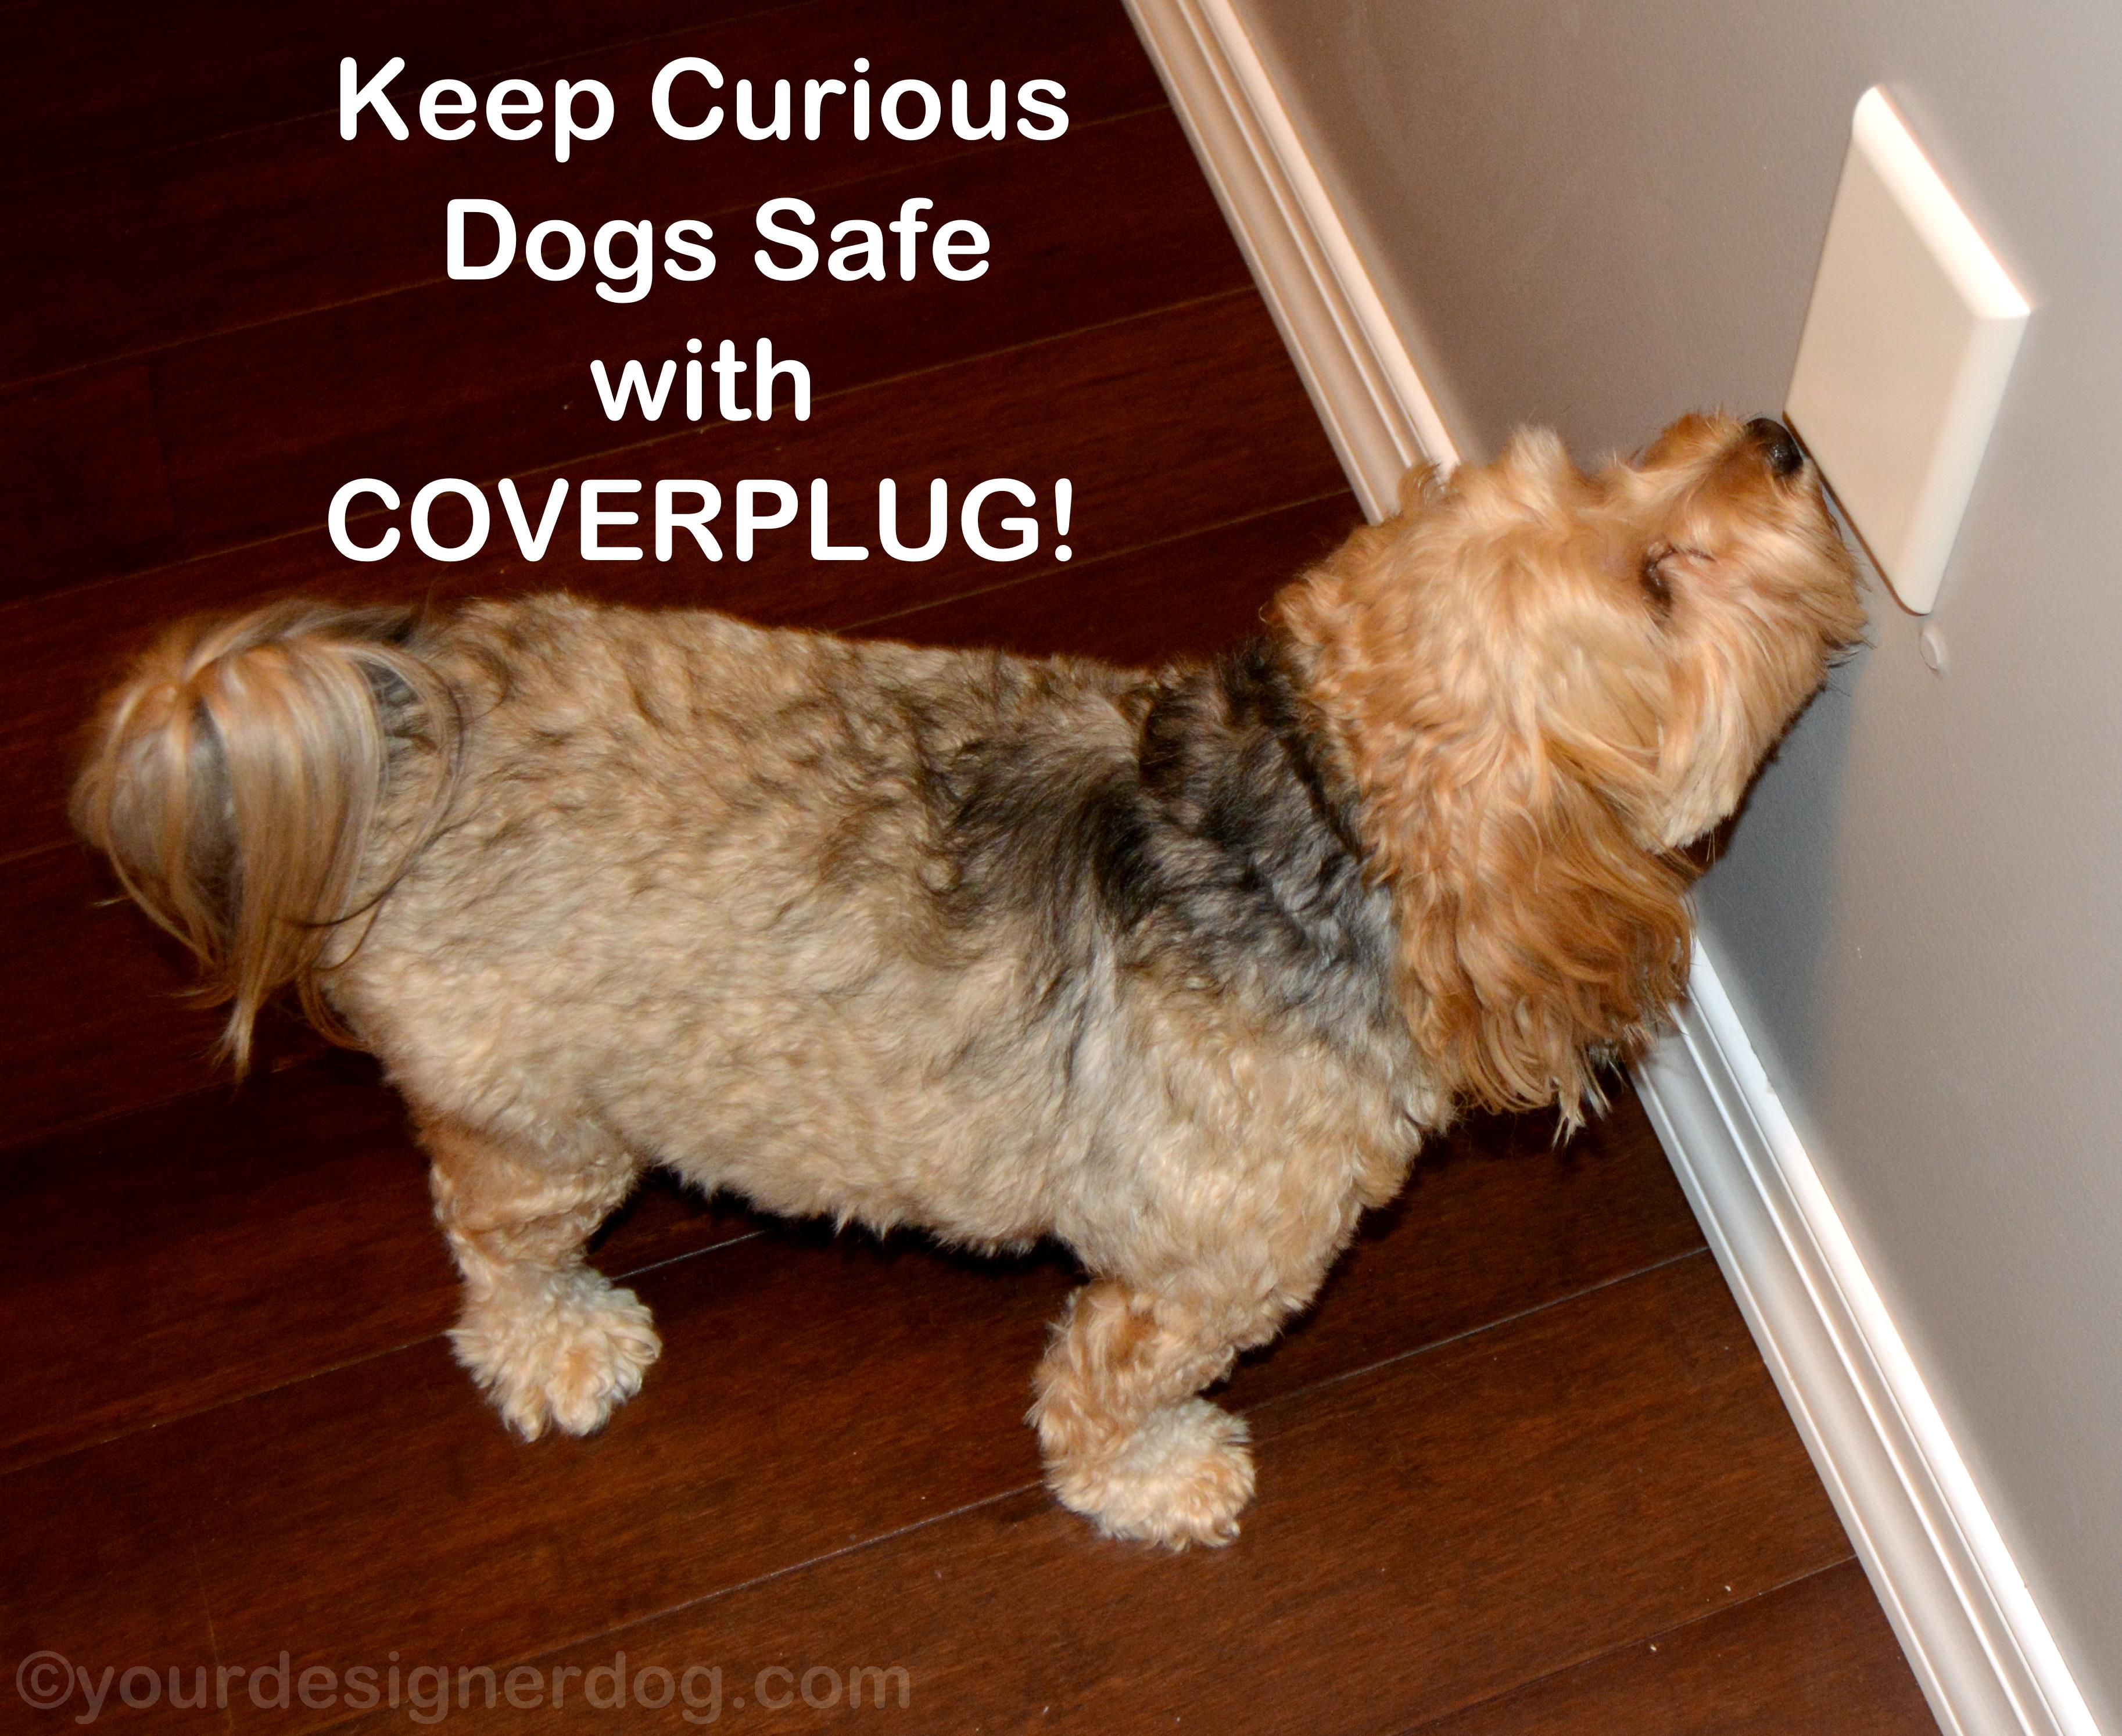 Keep Curious Dogs Safe with COVERPLUG